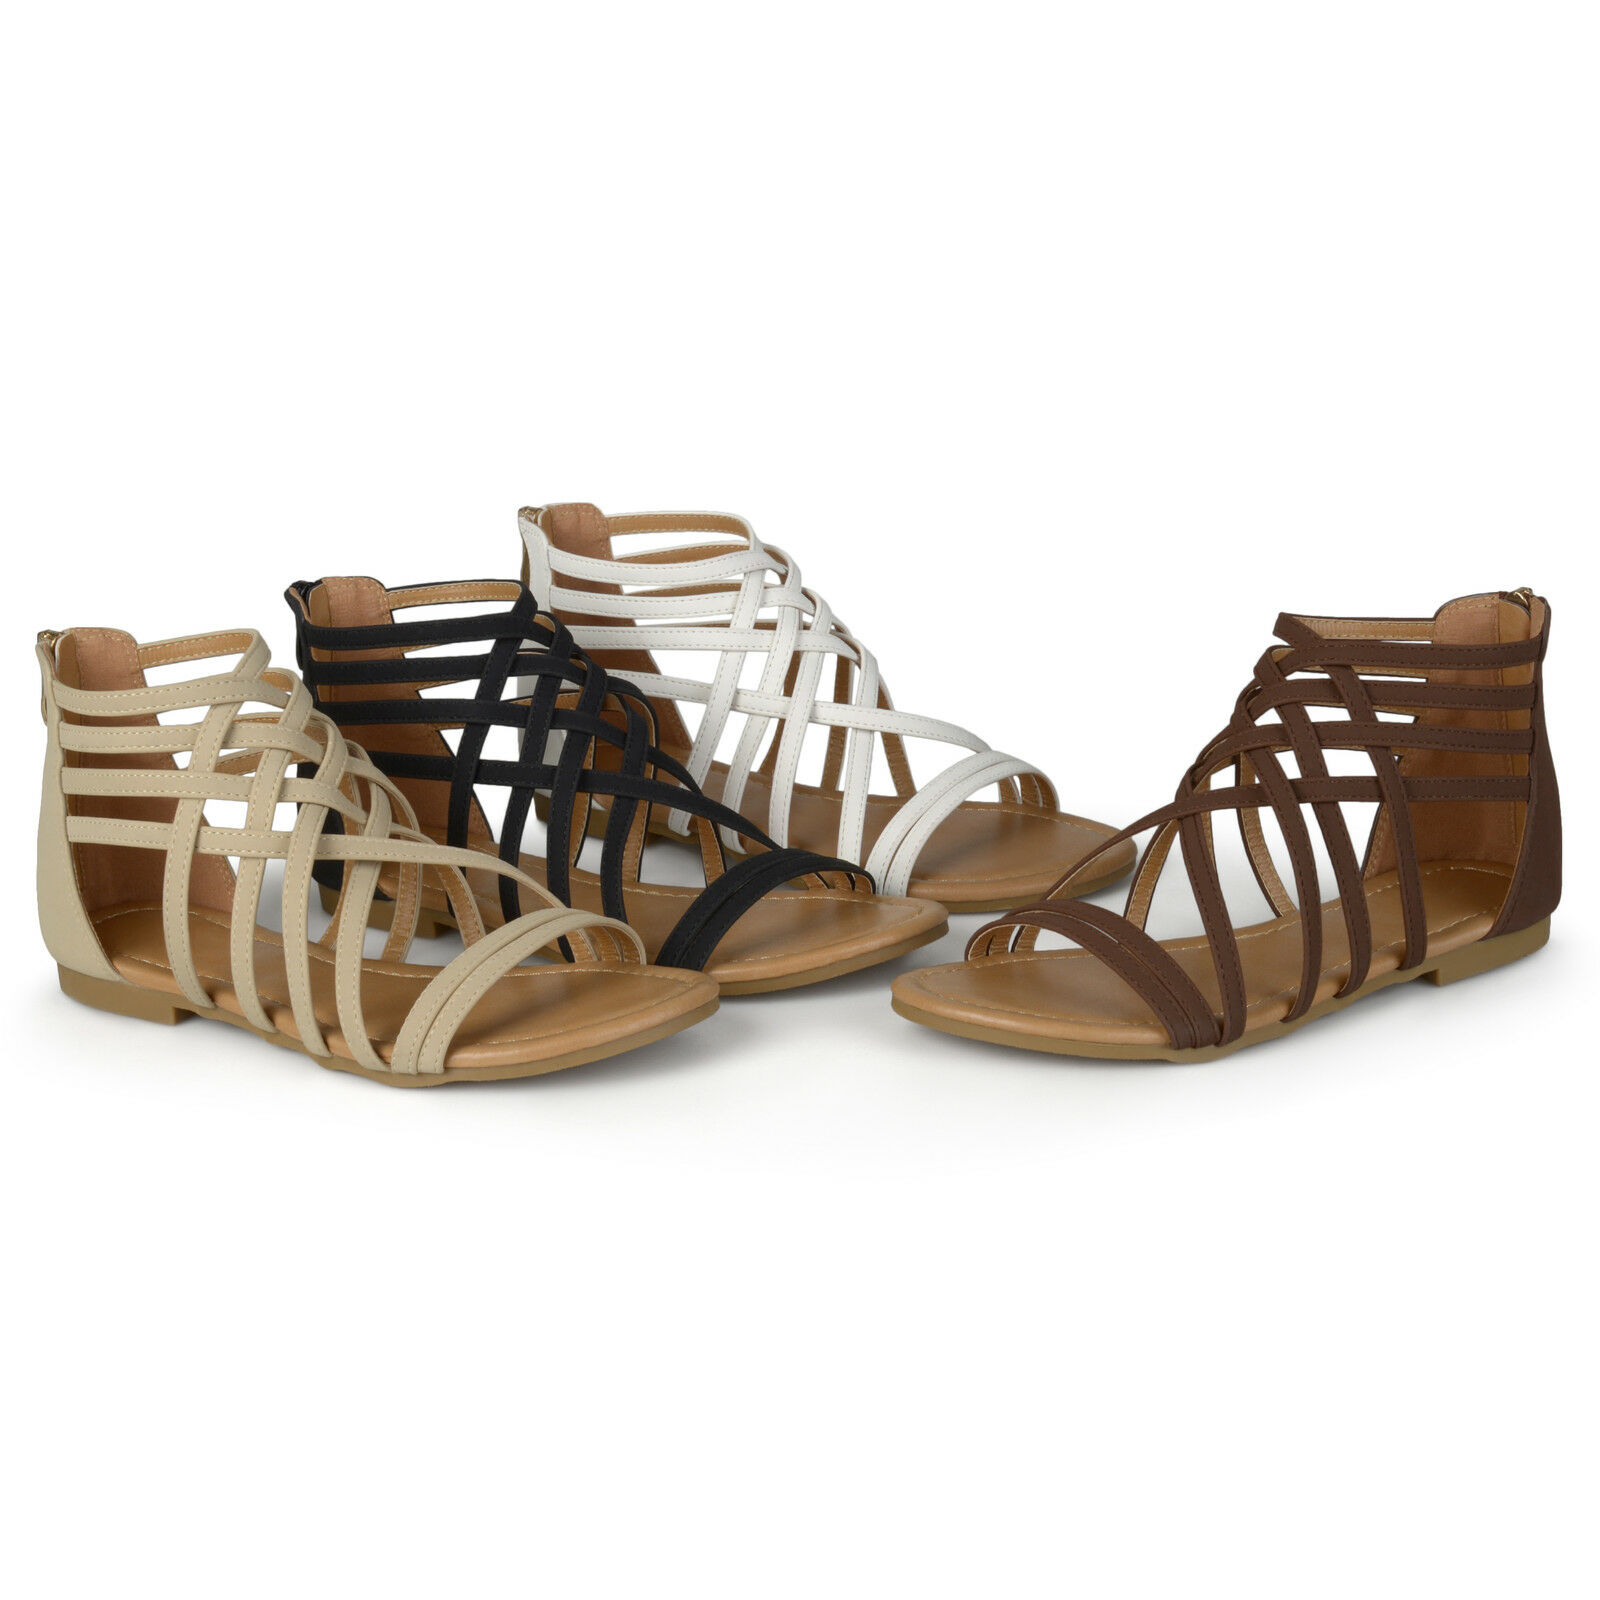 Brinley Co Womens Standard and Wide Width Strappy Gladiator Flat Sandals New